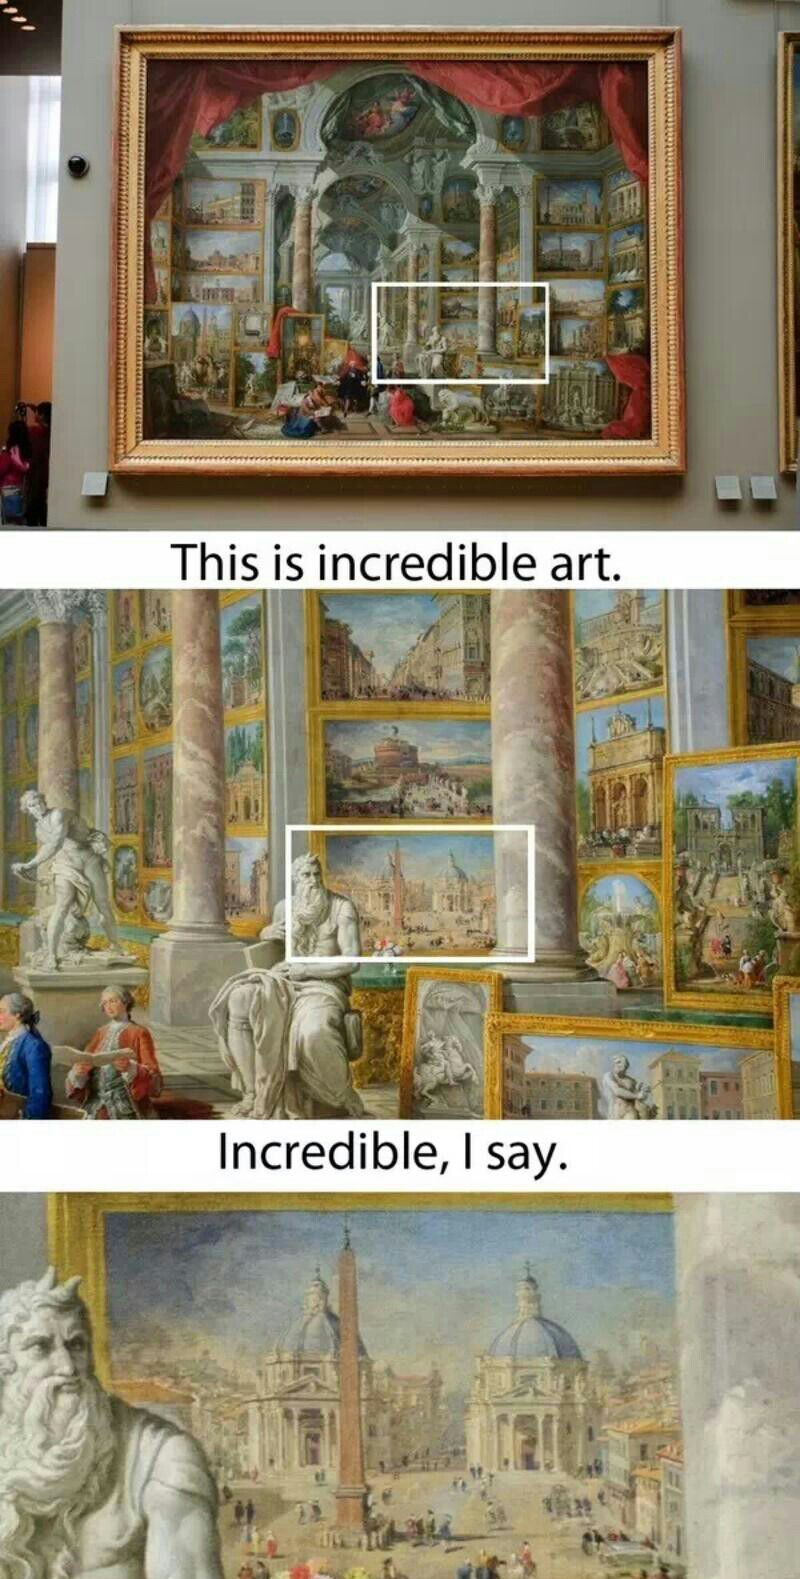 Haha this is fucking art - meme